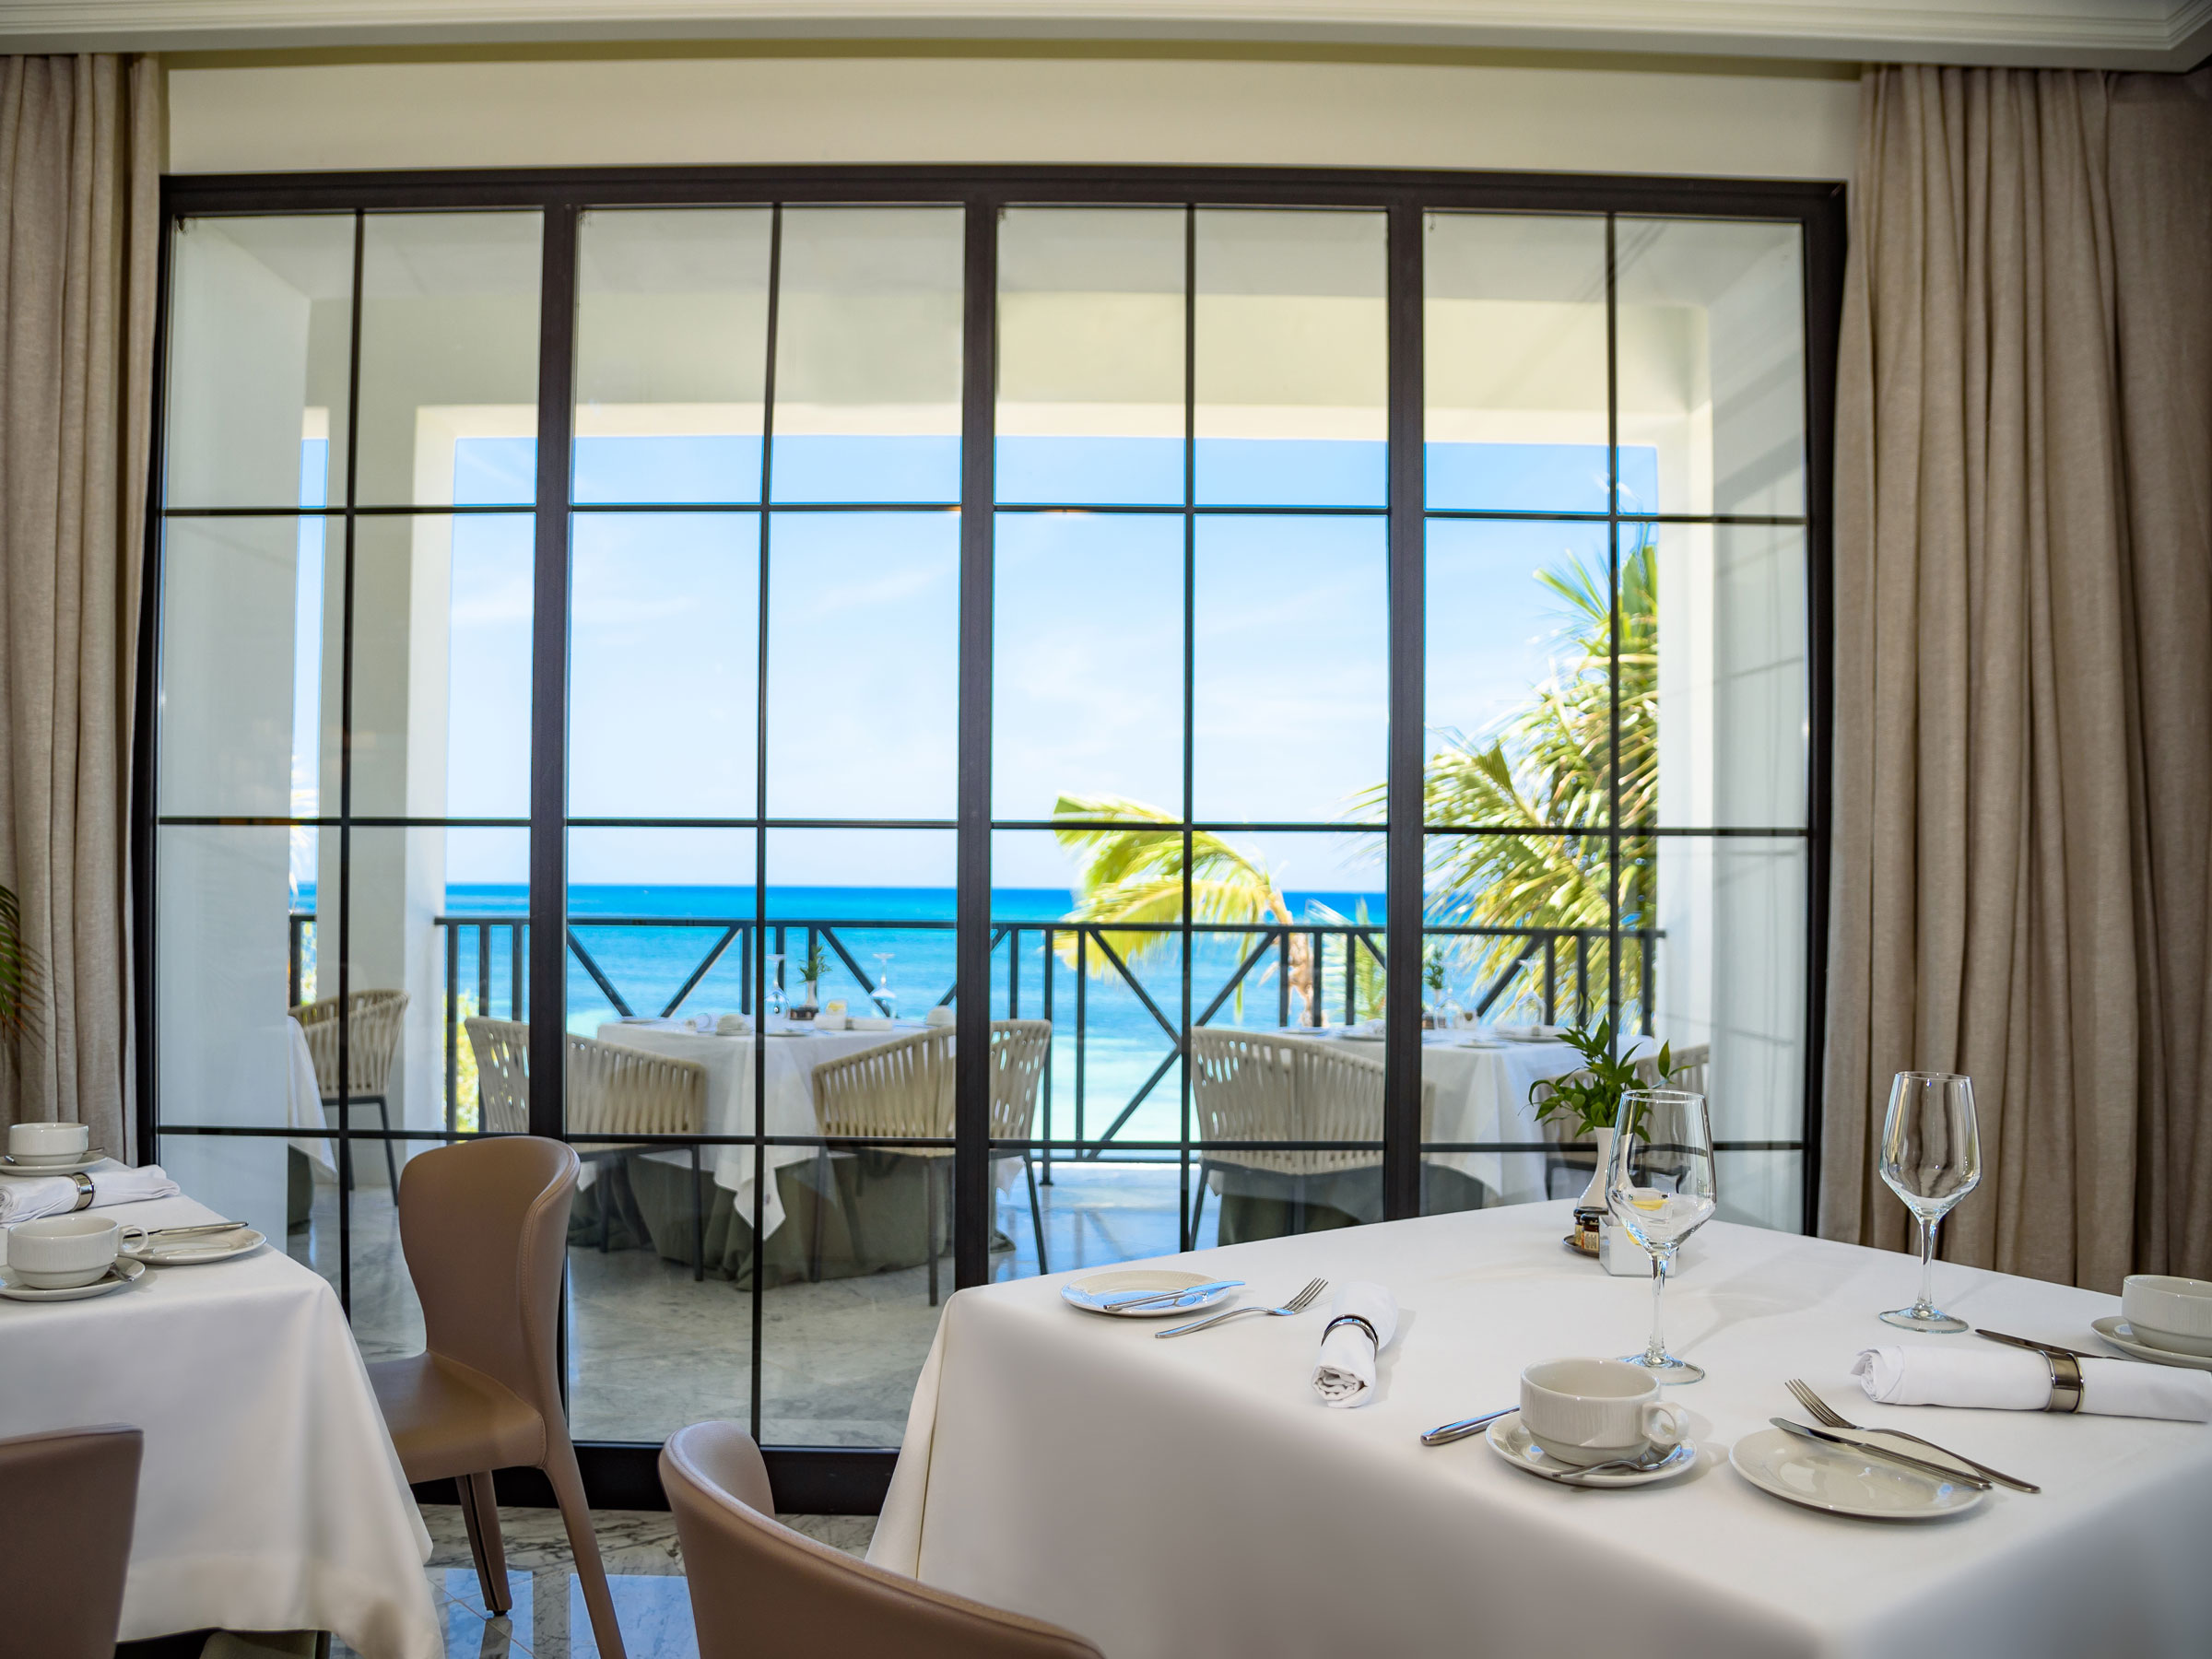 Book the Excellence Club for Exclusive Restaurants at Excellence Oyster Bay